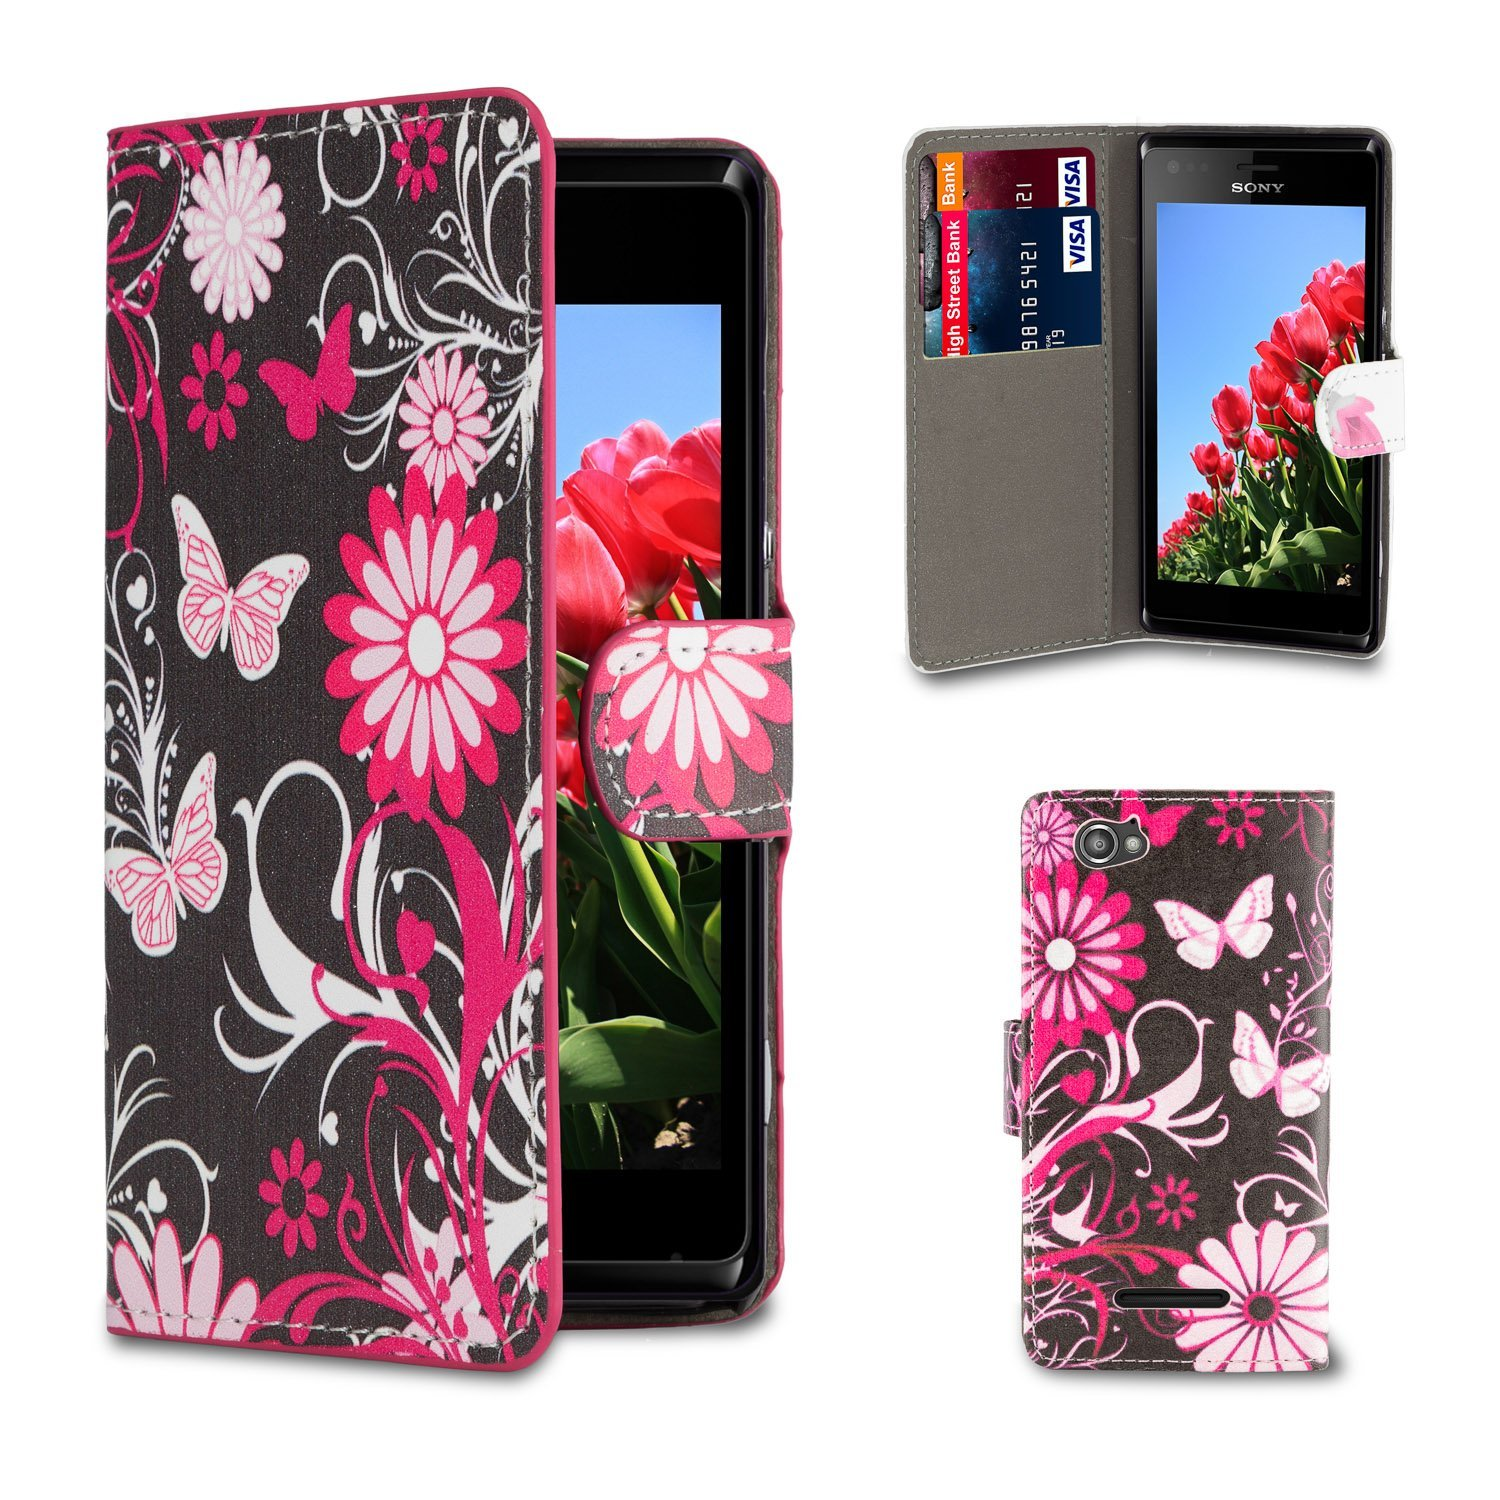 32nd Design book wallet PU leather case cover for Sony Xperia M2 - Gerbera